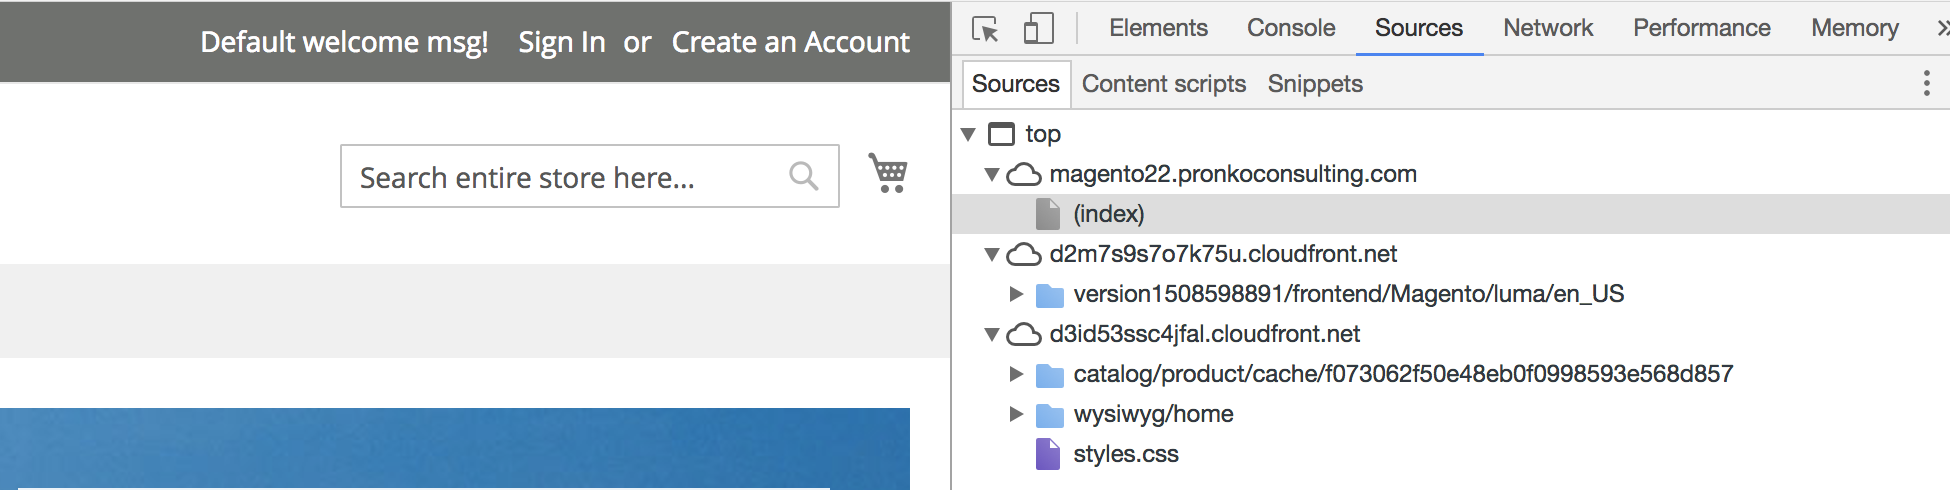 Magento 2 Frontend with AWS CloudFront domains